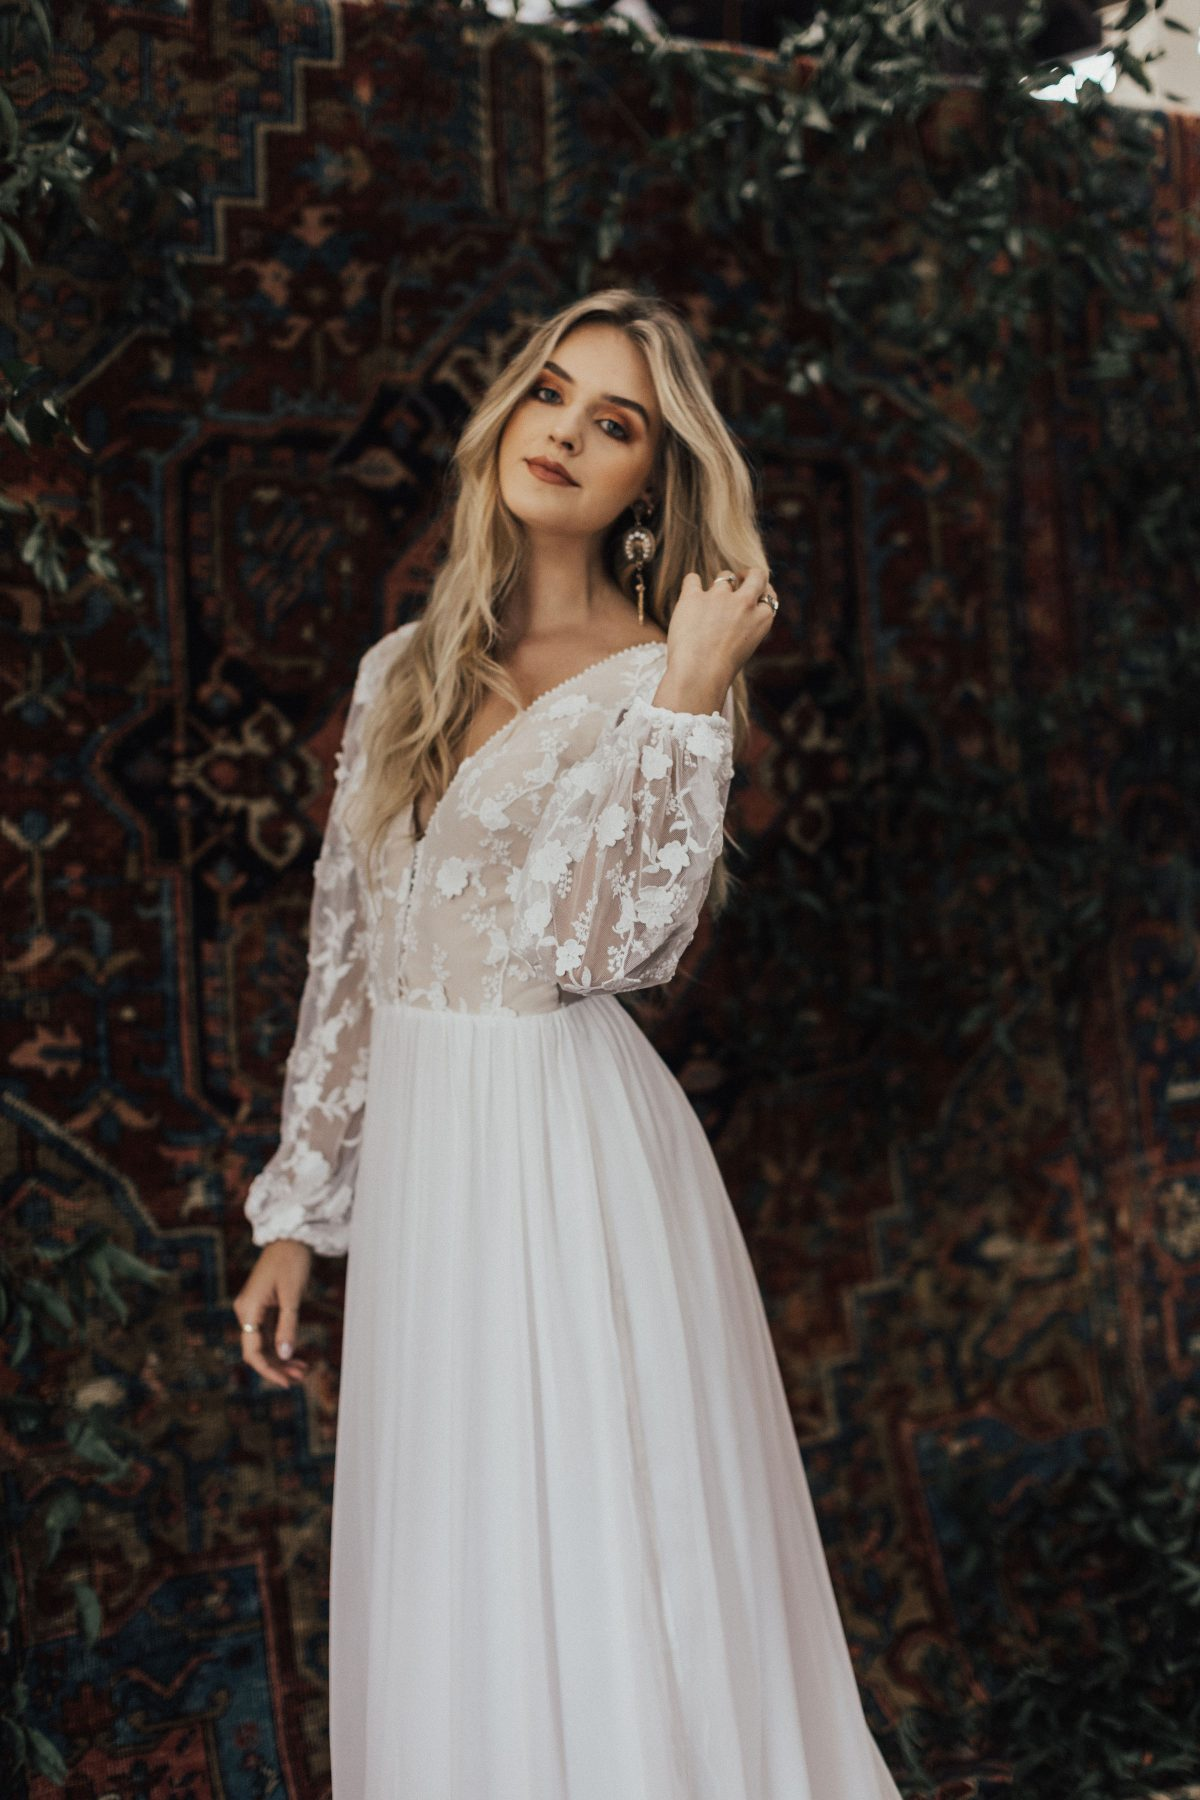 a-boho-bride-dream-dress-made-from-textured-floral-lace-and-silk-chifon-skirt-with-train